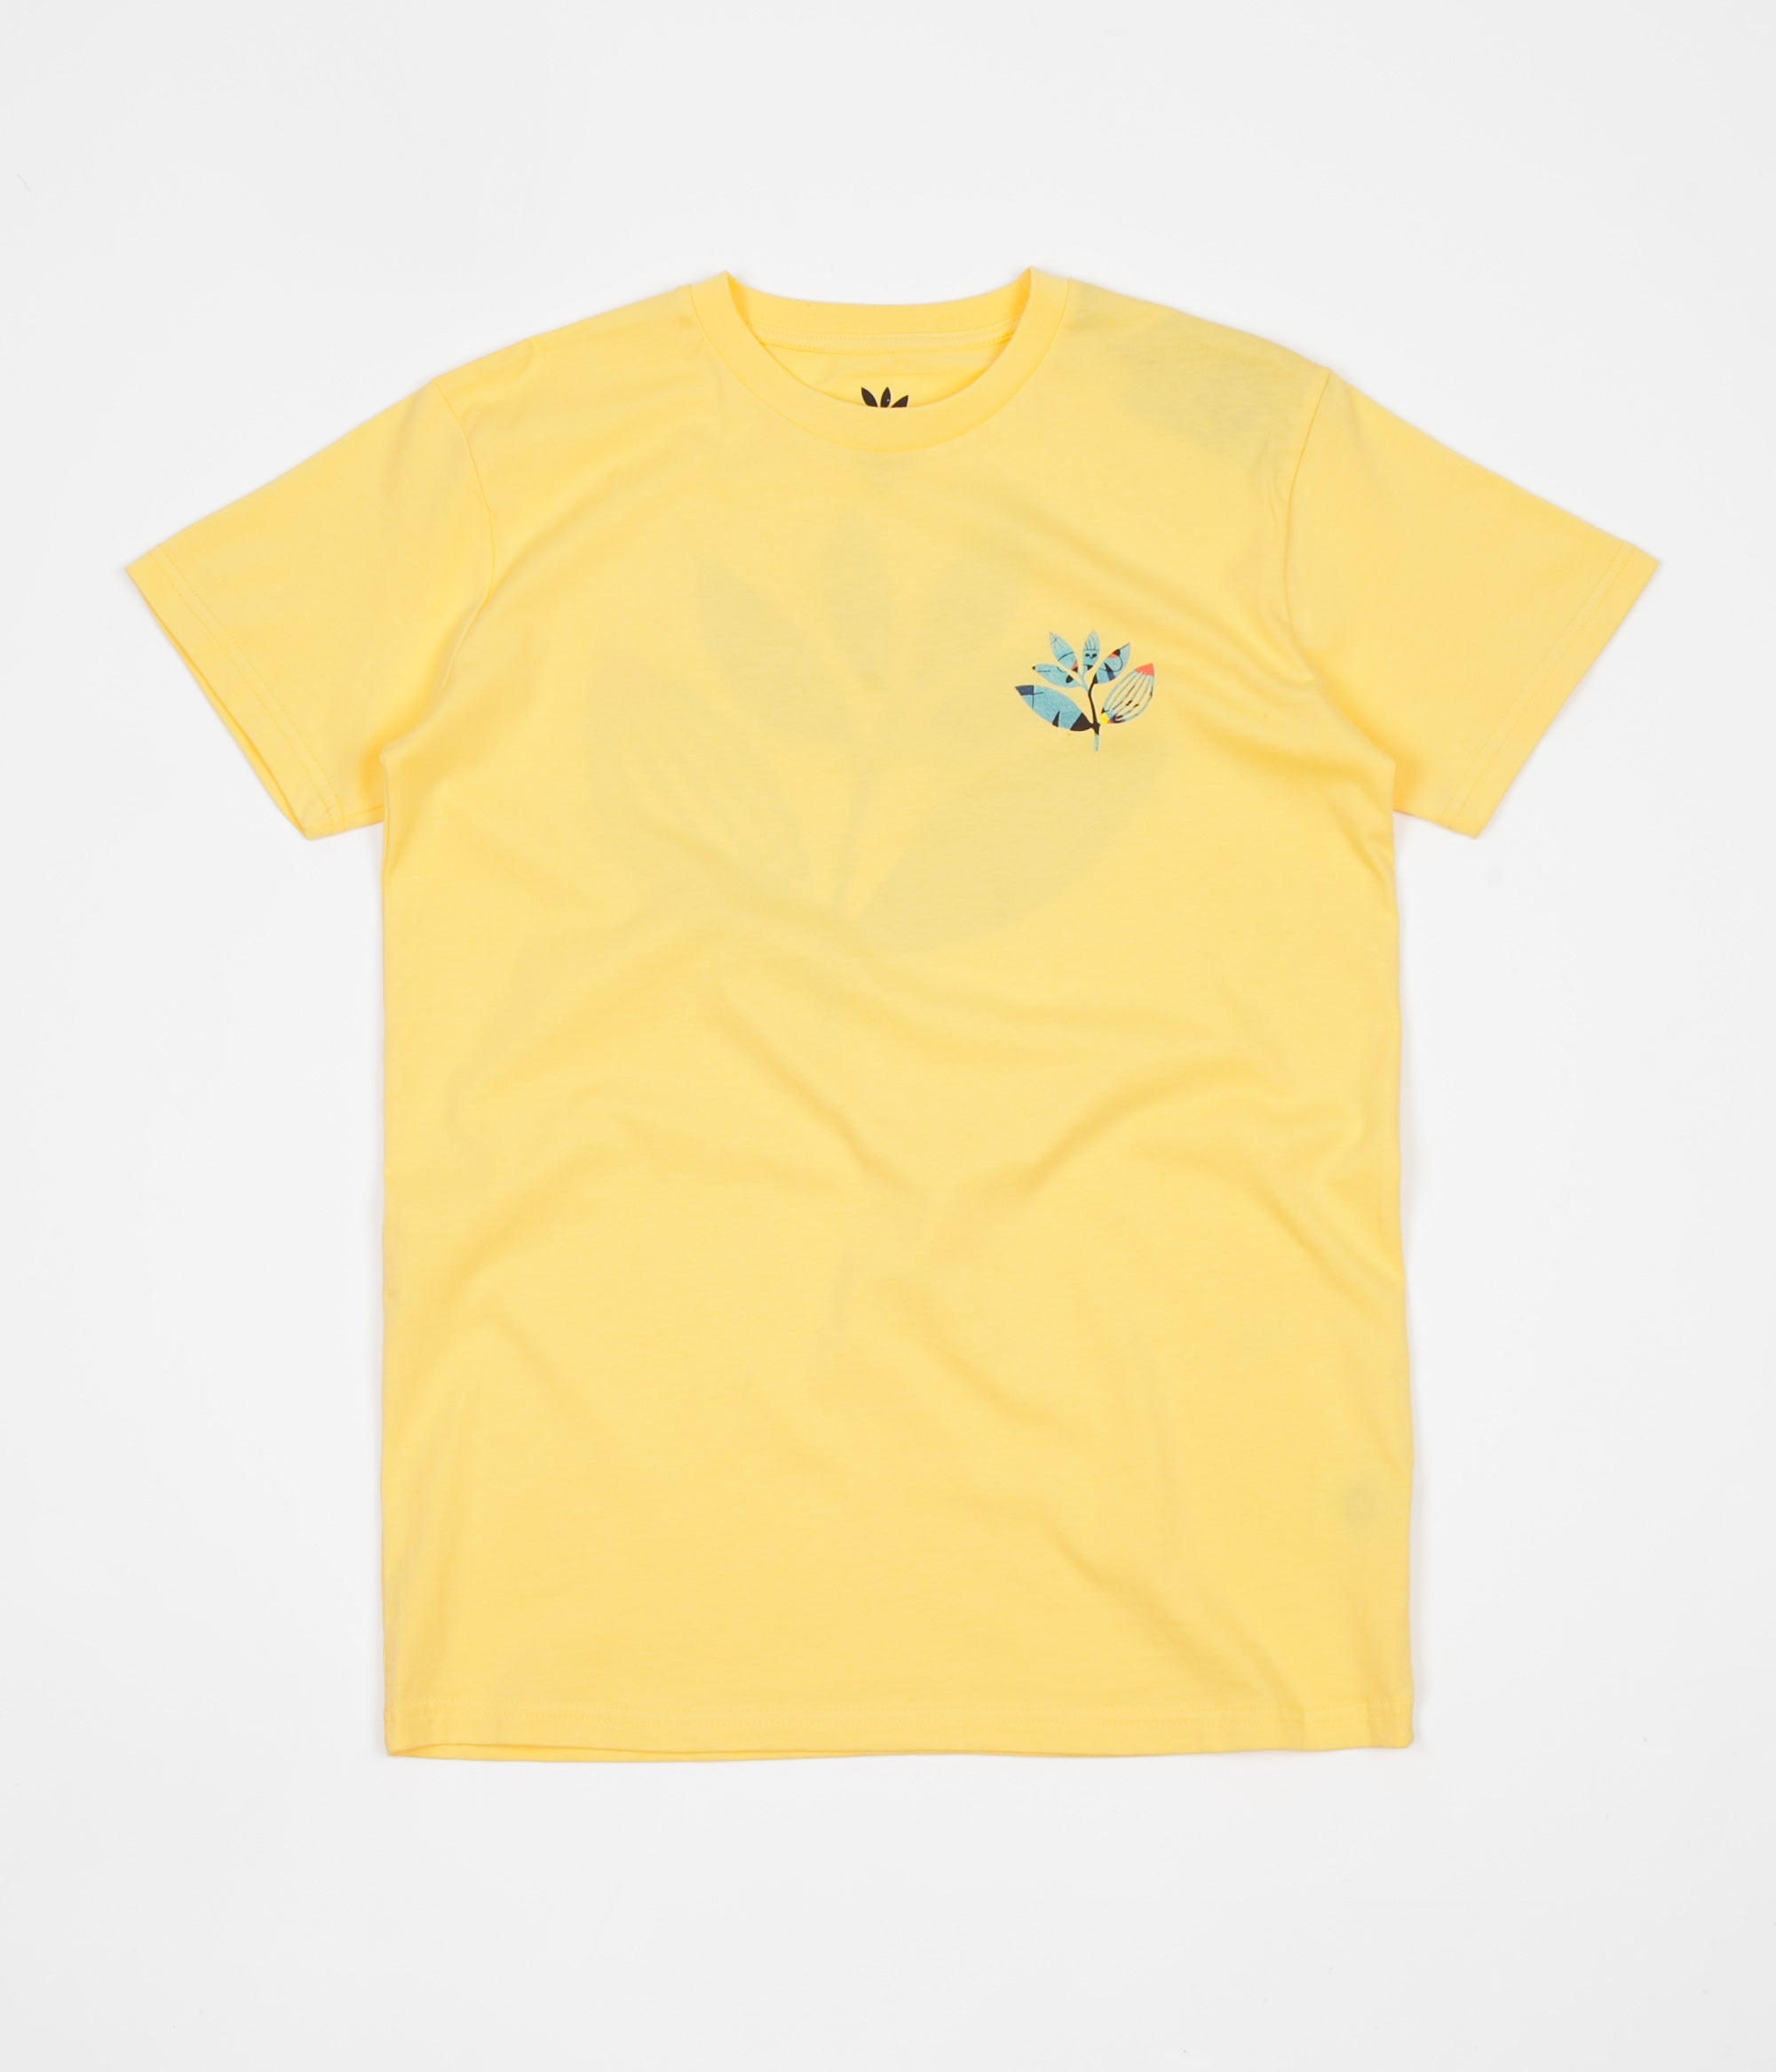 Magenta Miro T-Shirt - Yellow